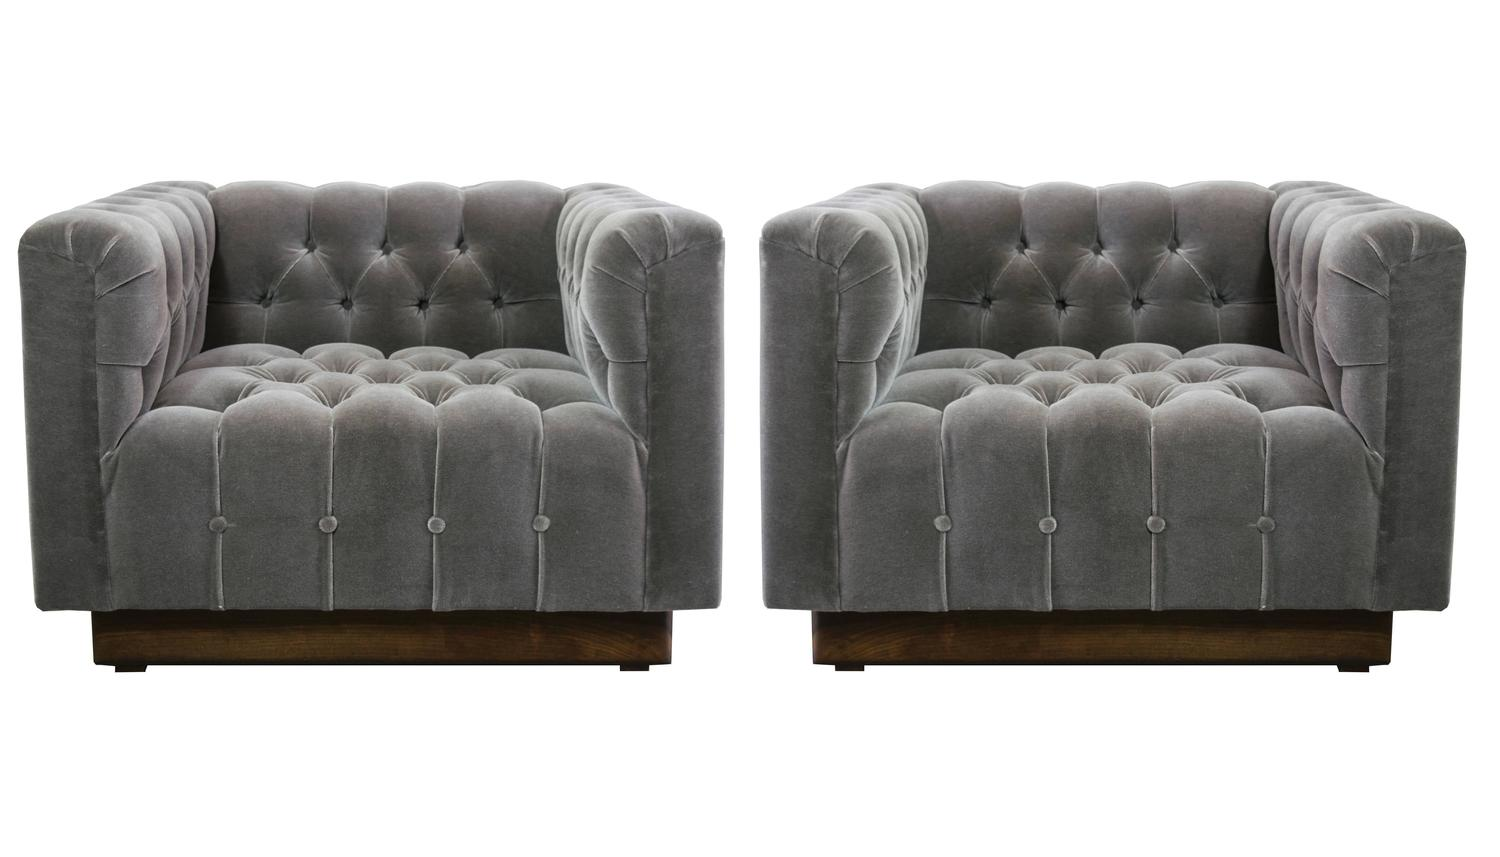 Oversized Milo Baughman Tufted Lounge Chairs In Smoky Gray